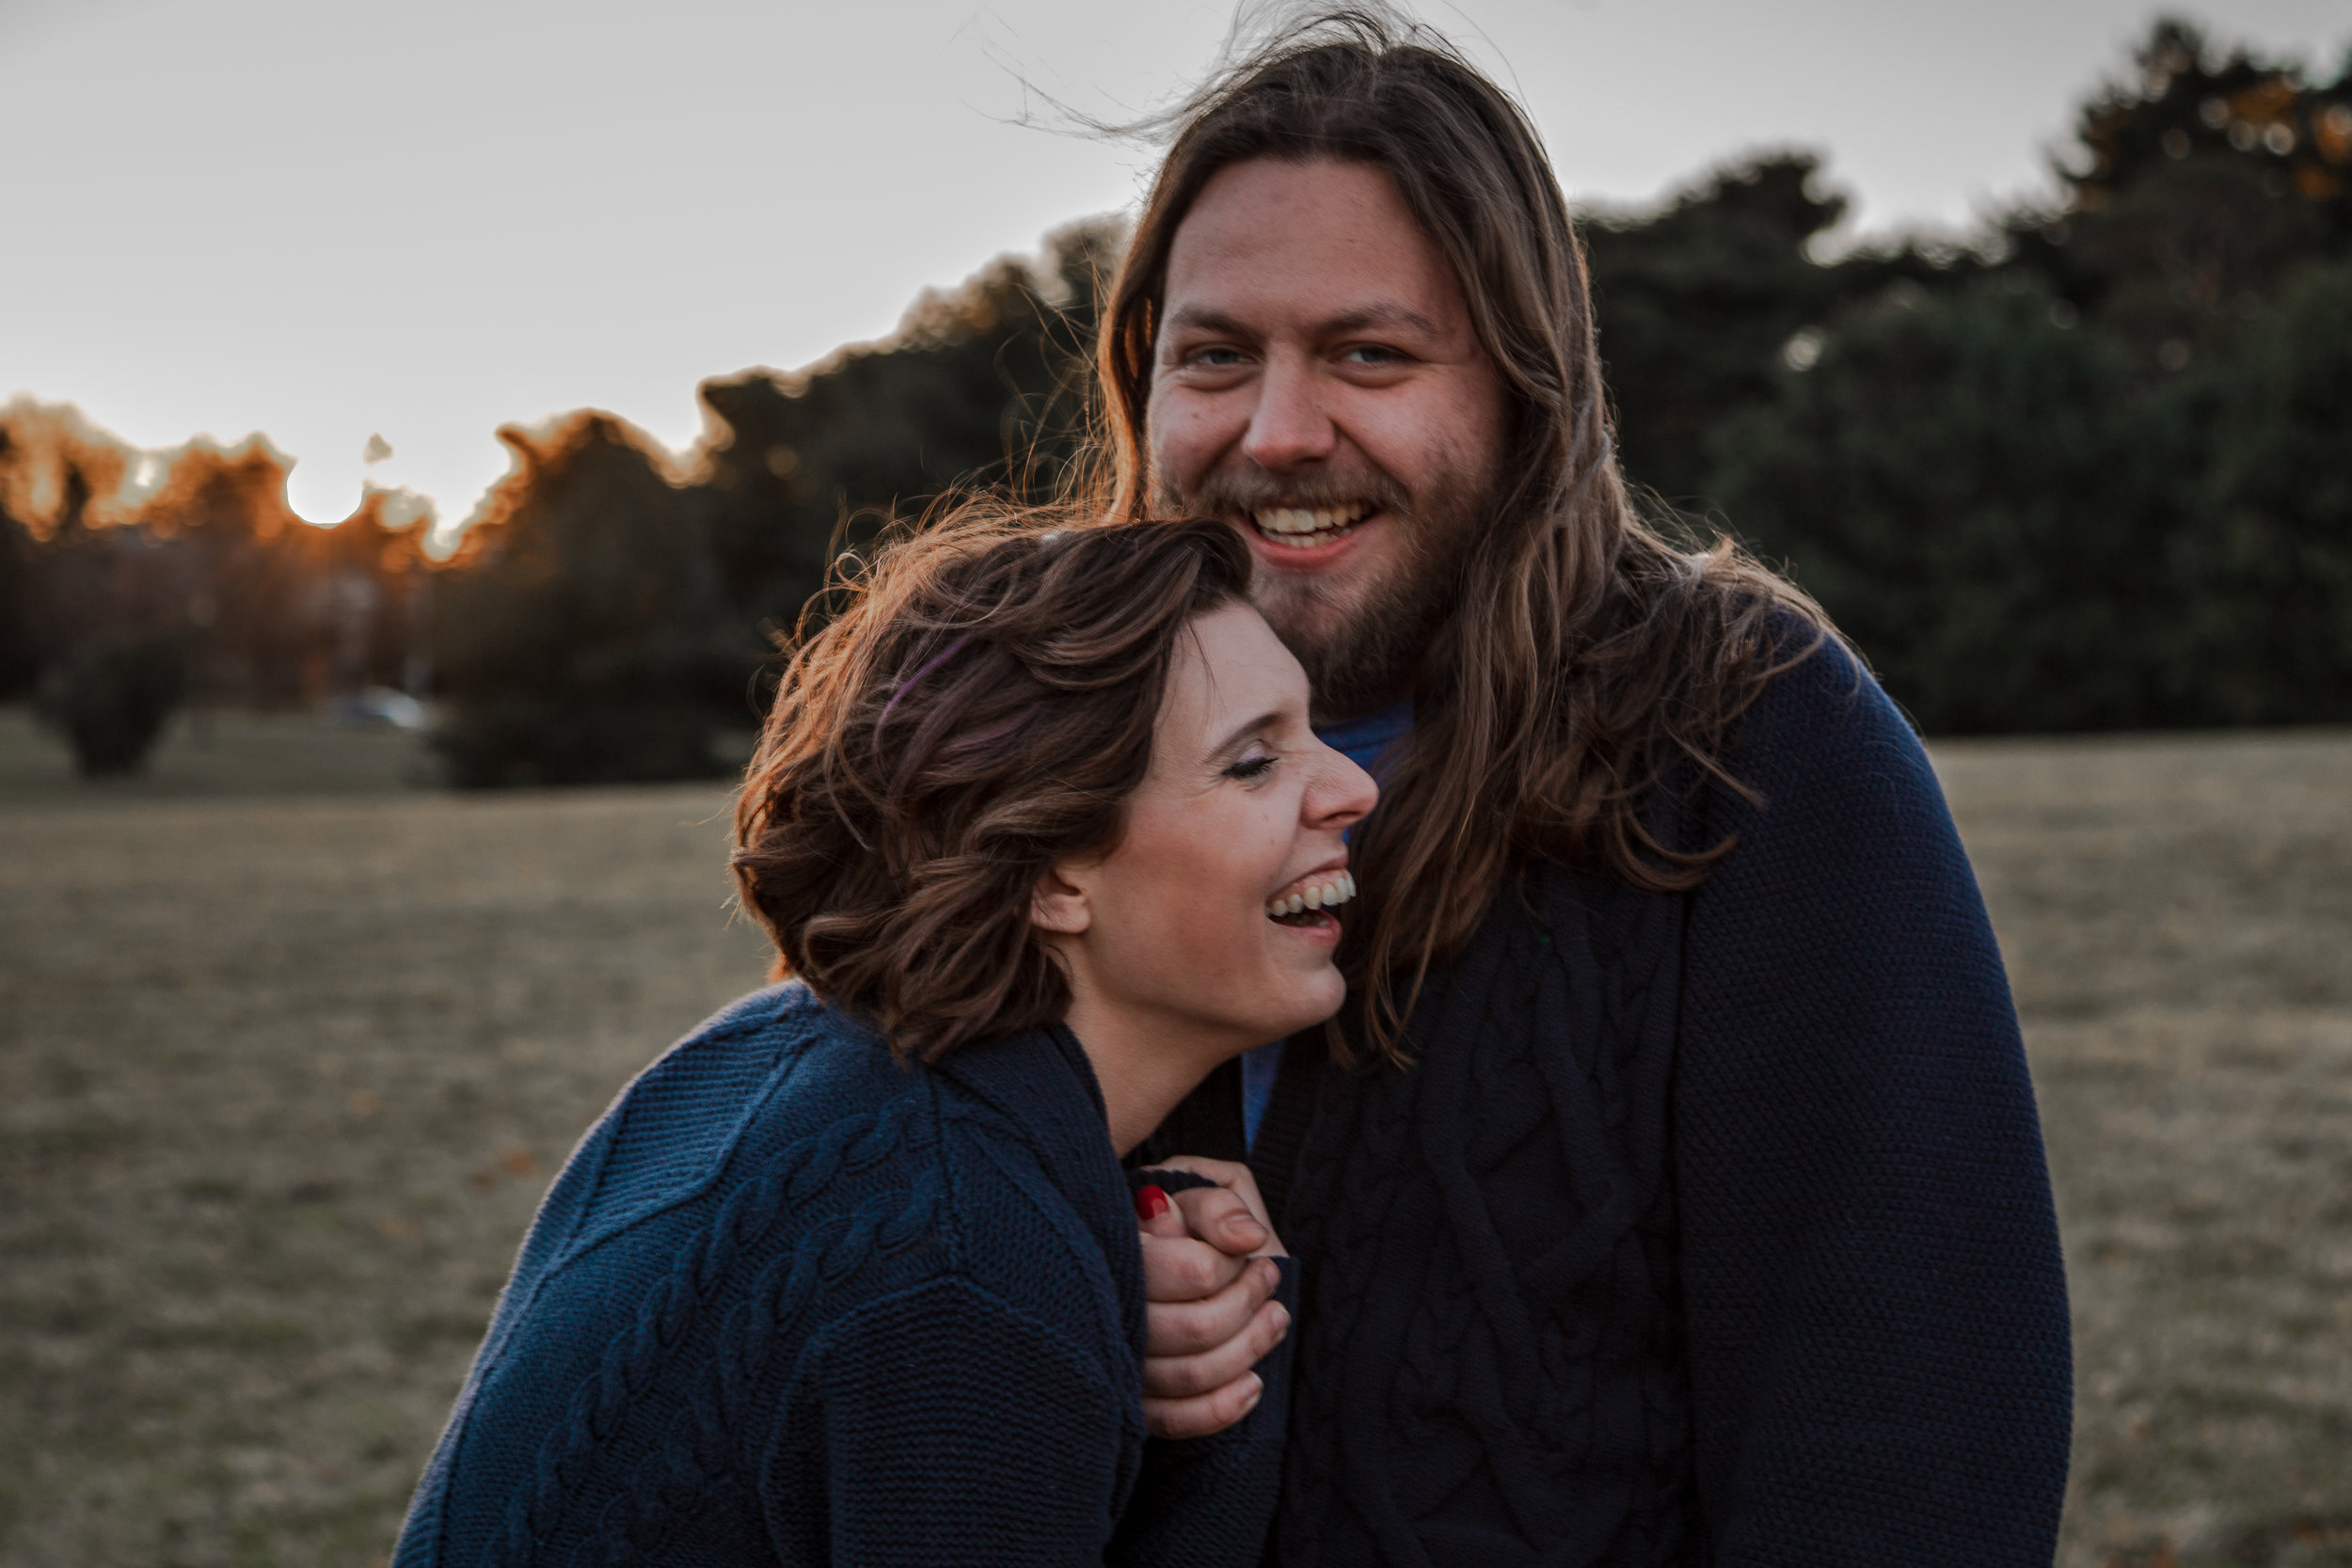 Tom + Kailey Engagements (17 of 24).jpg